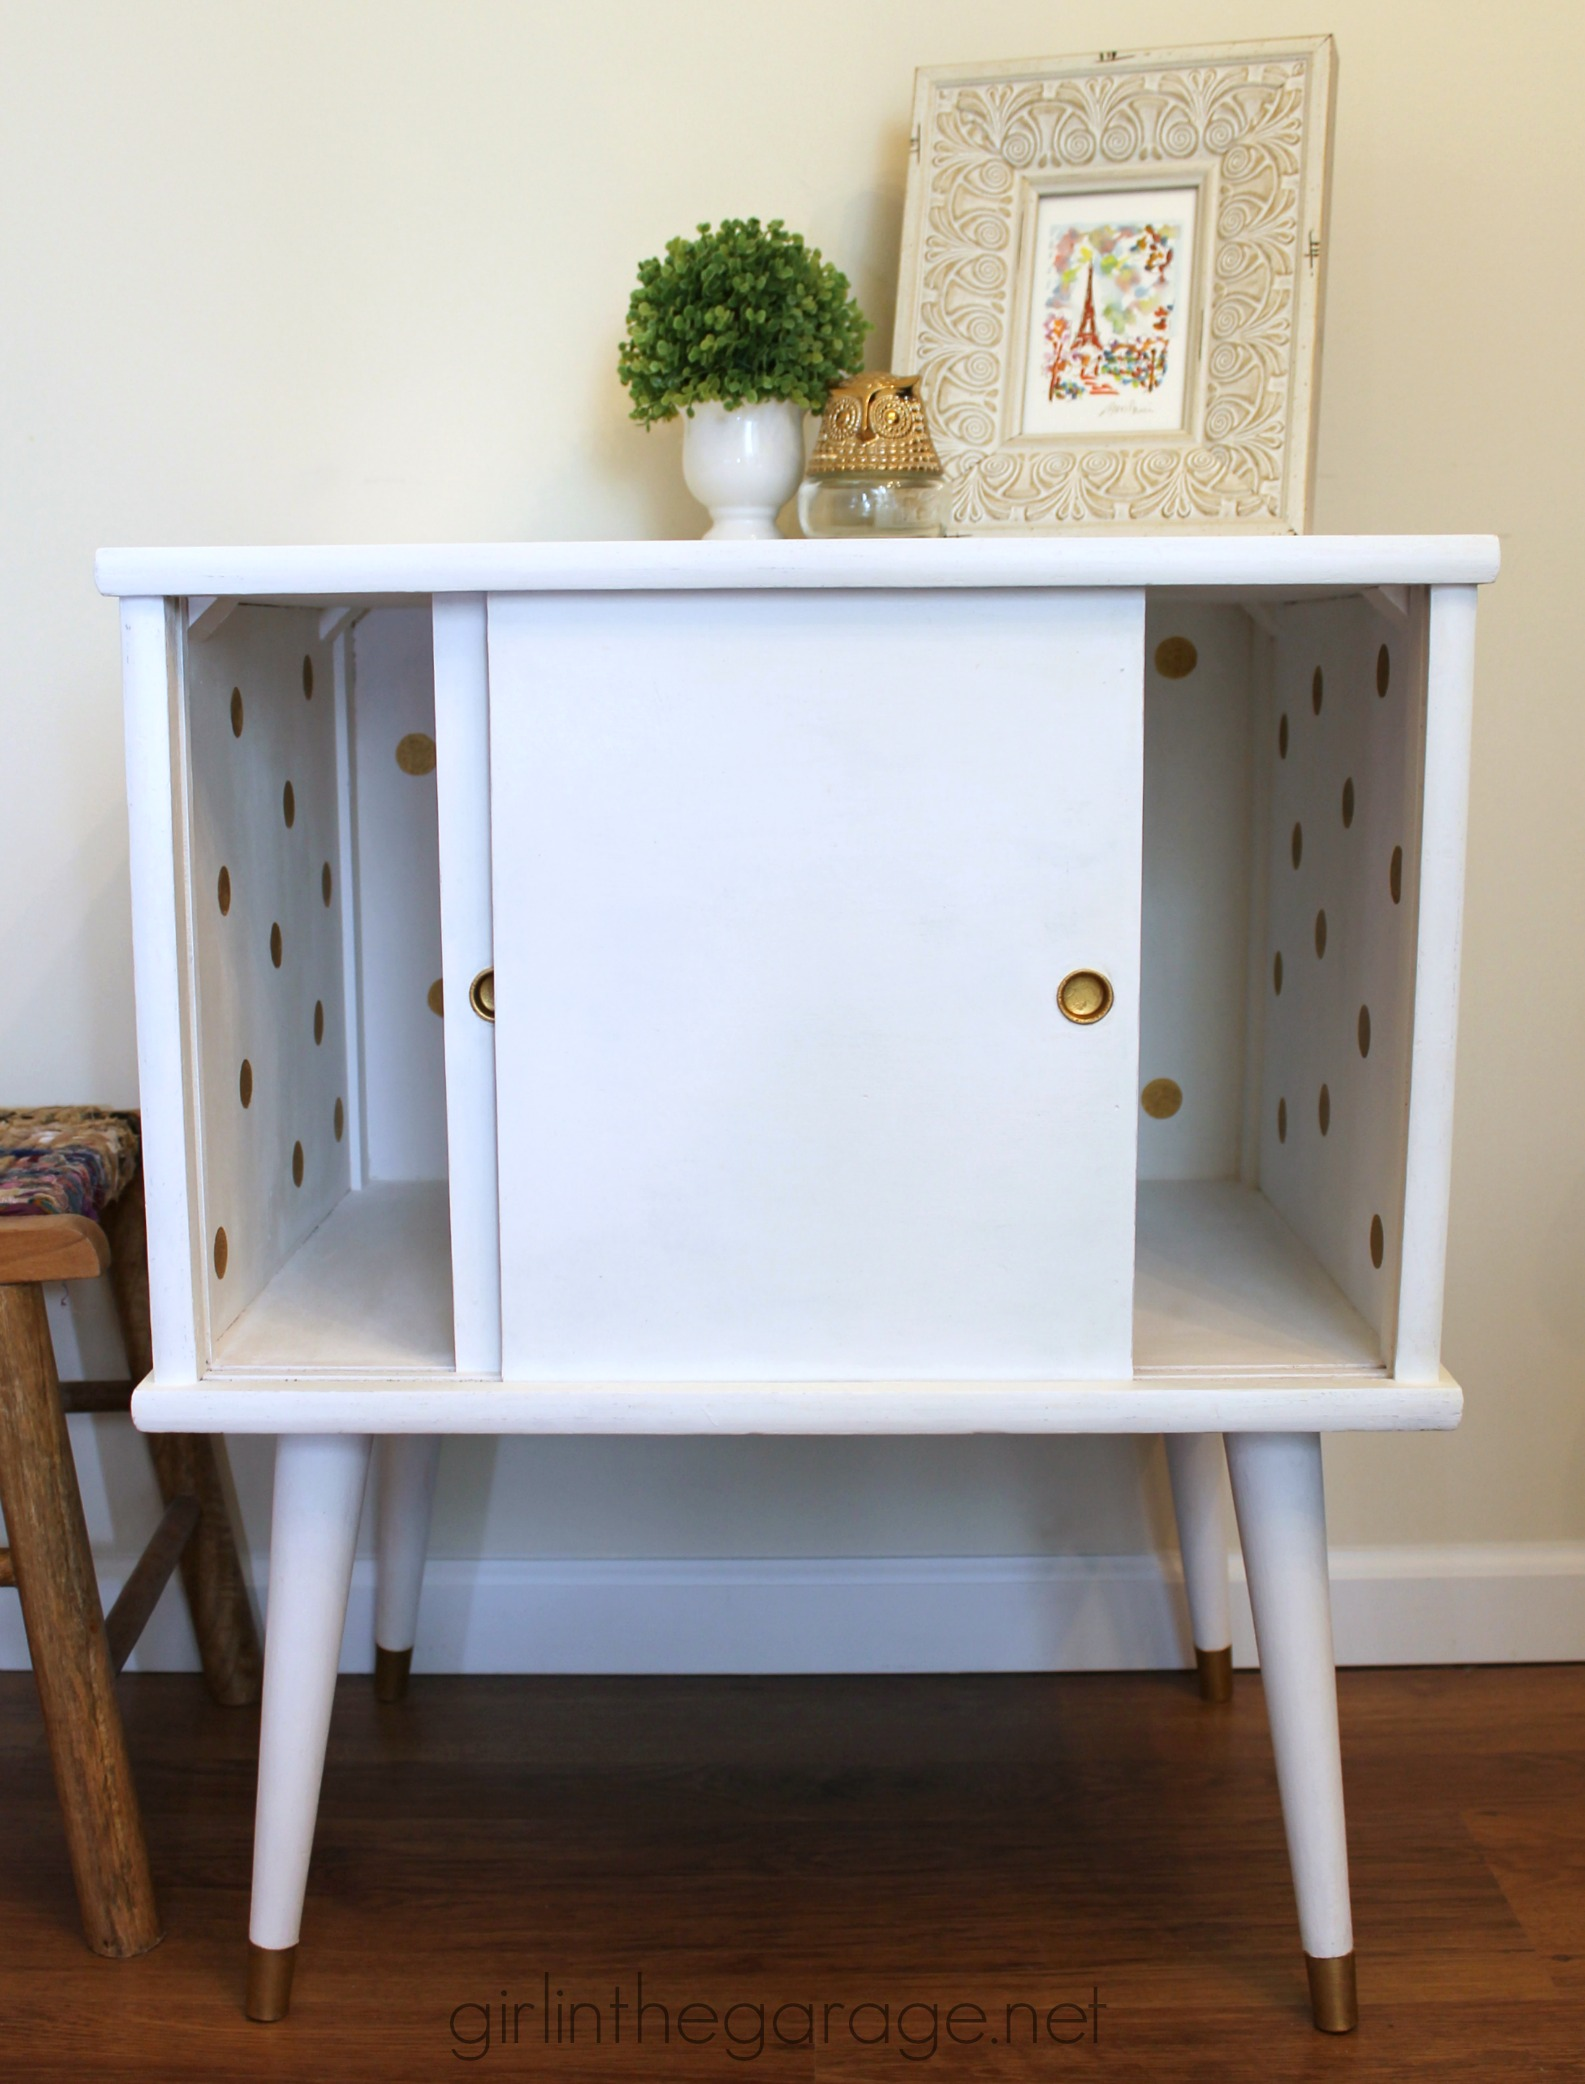 Midcentury Record Cabinet Makeover - Girl in the Garage